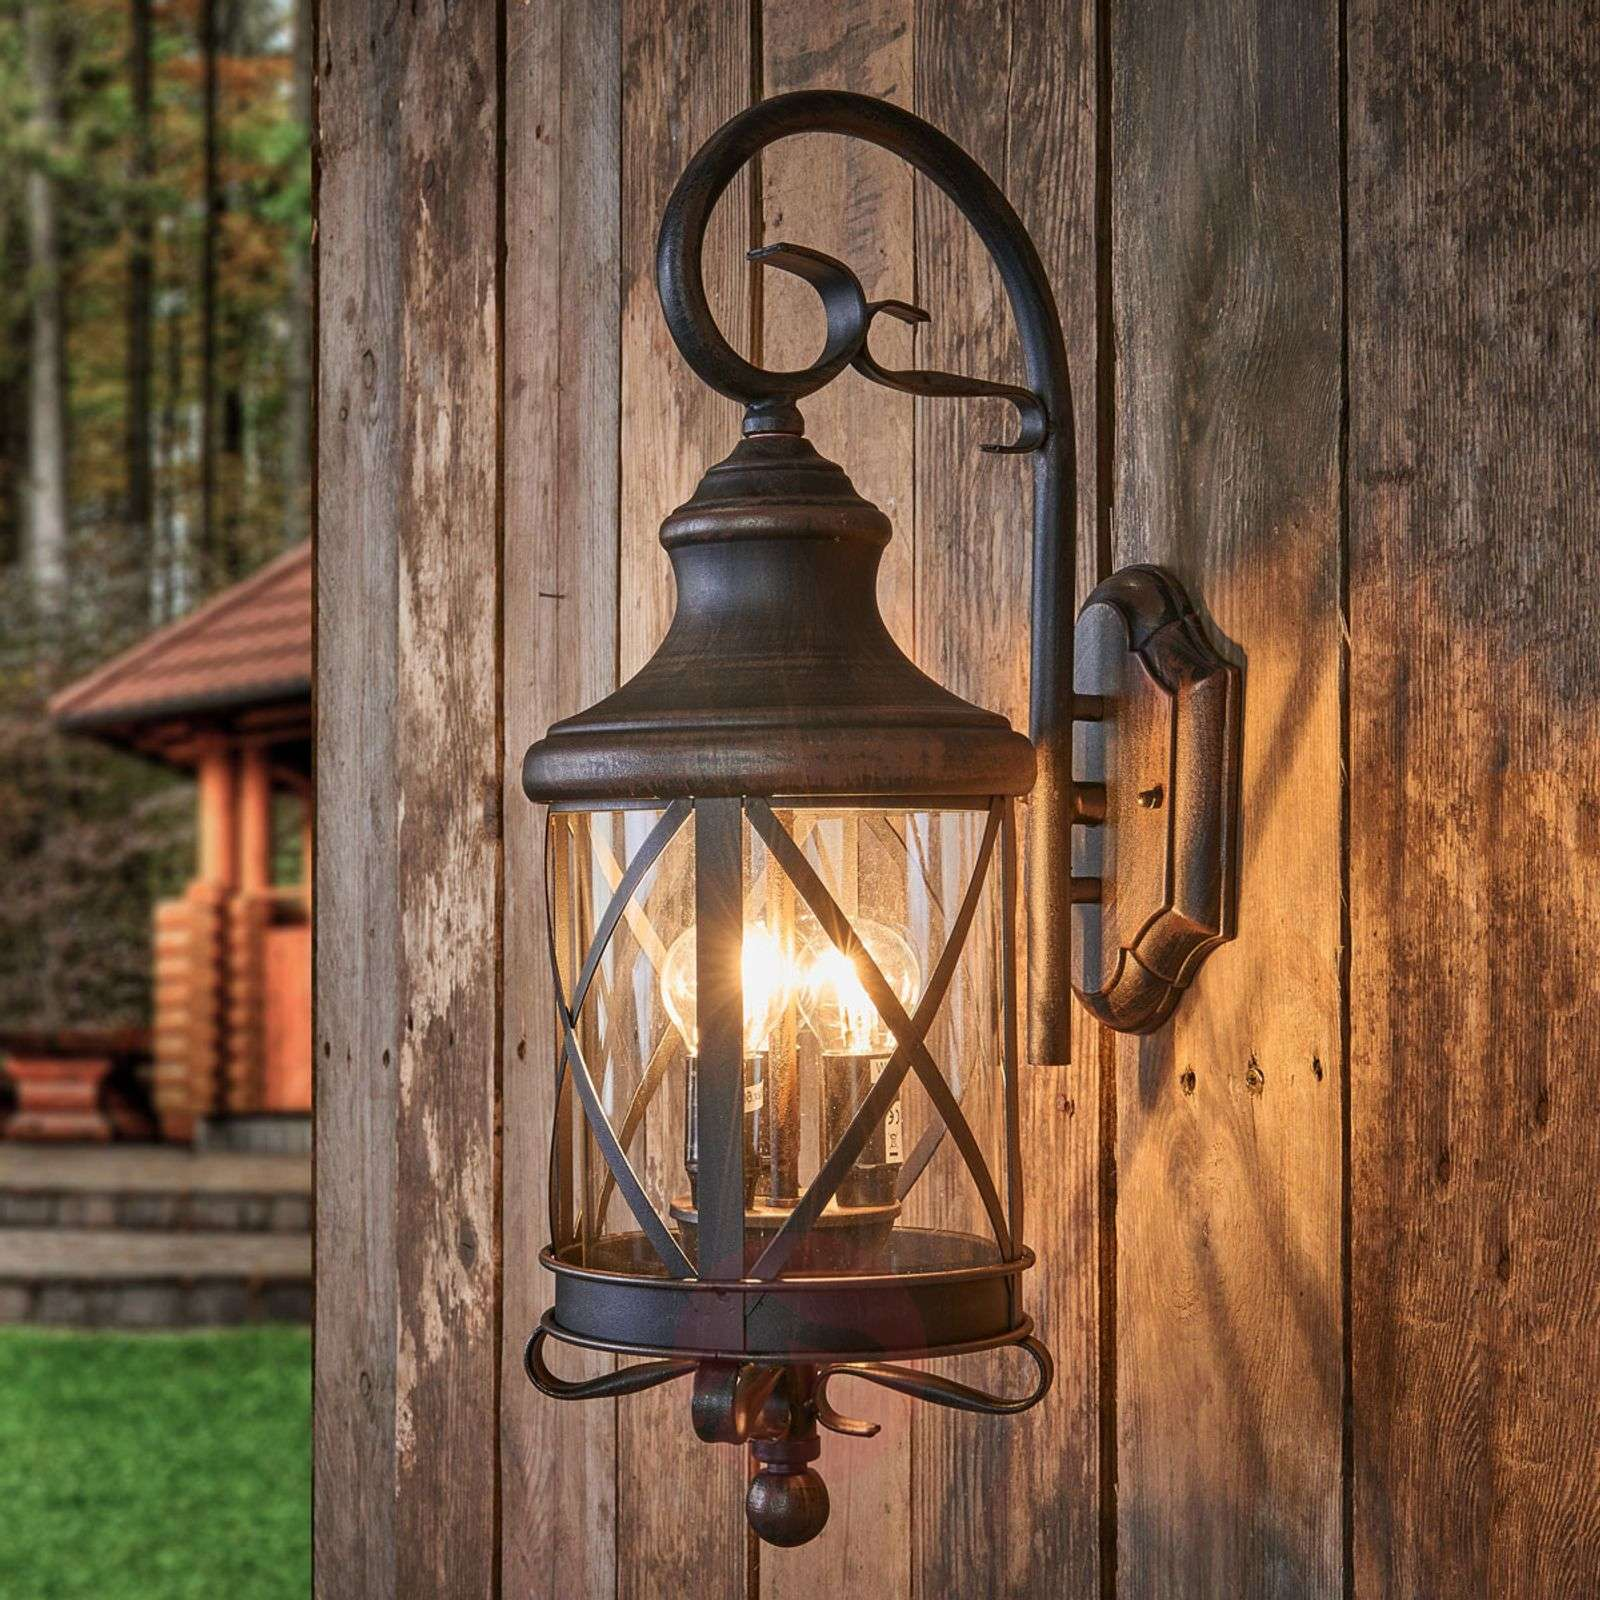 Rustic outdoor wall light Romantica | Lights.co.uk on Outdoor Wall Sconce Lighting id=57054